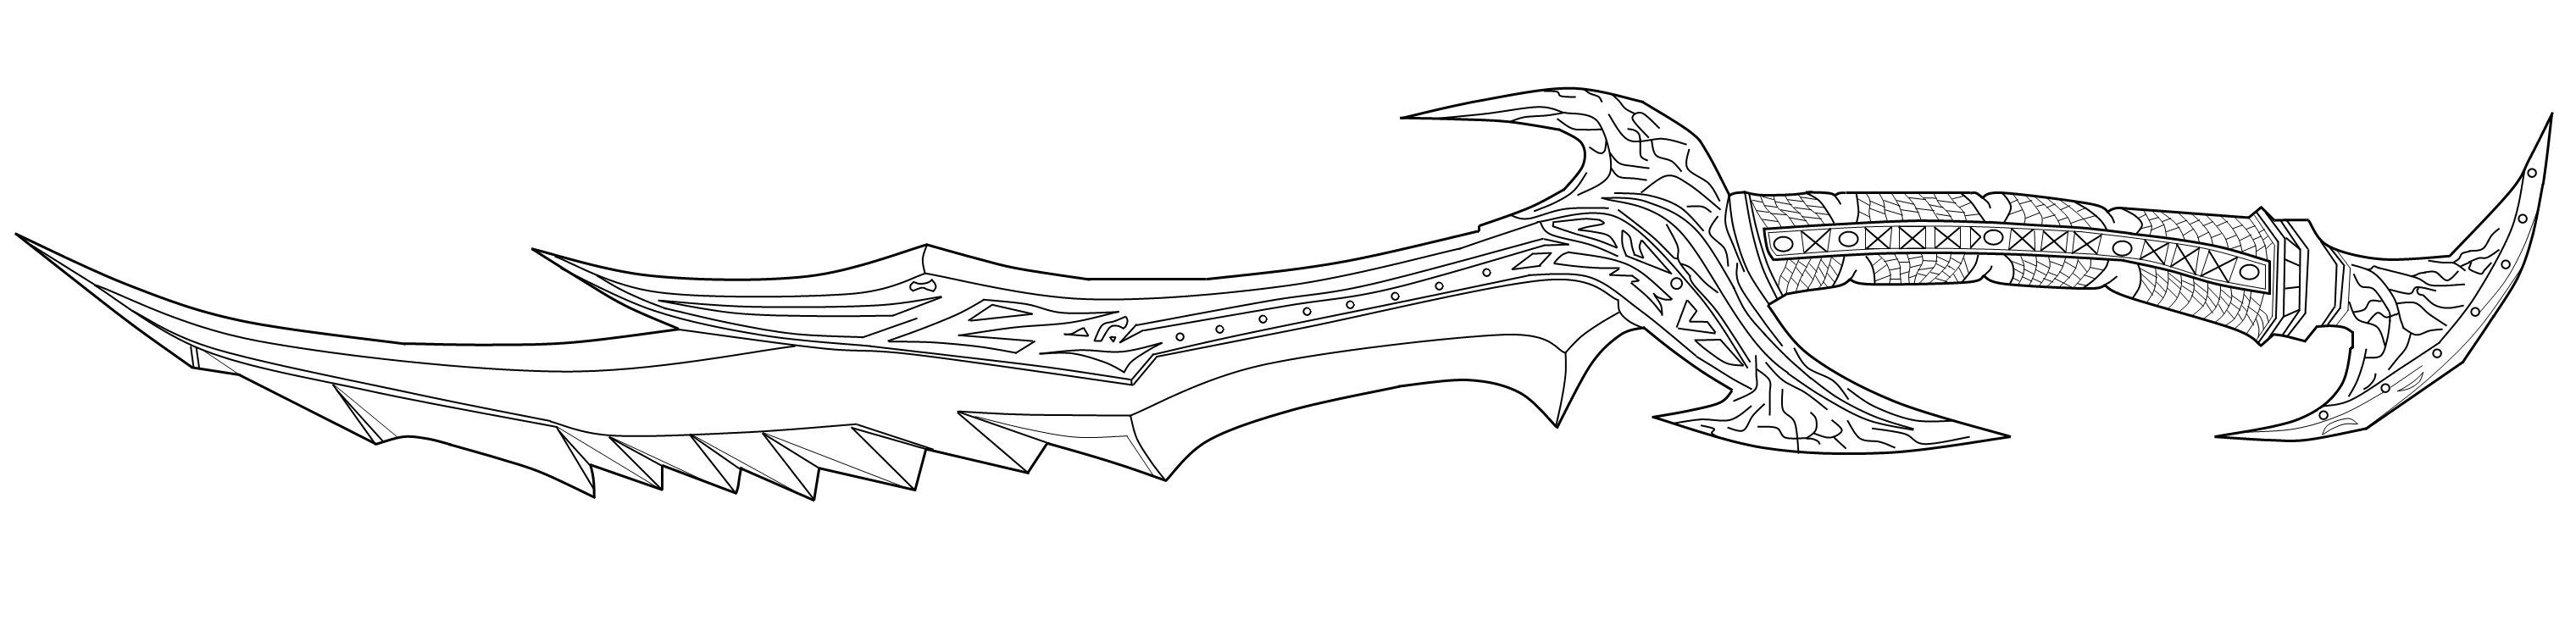 Drawn weapon skyrim On linearts Skyrim DeviantArt sword